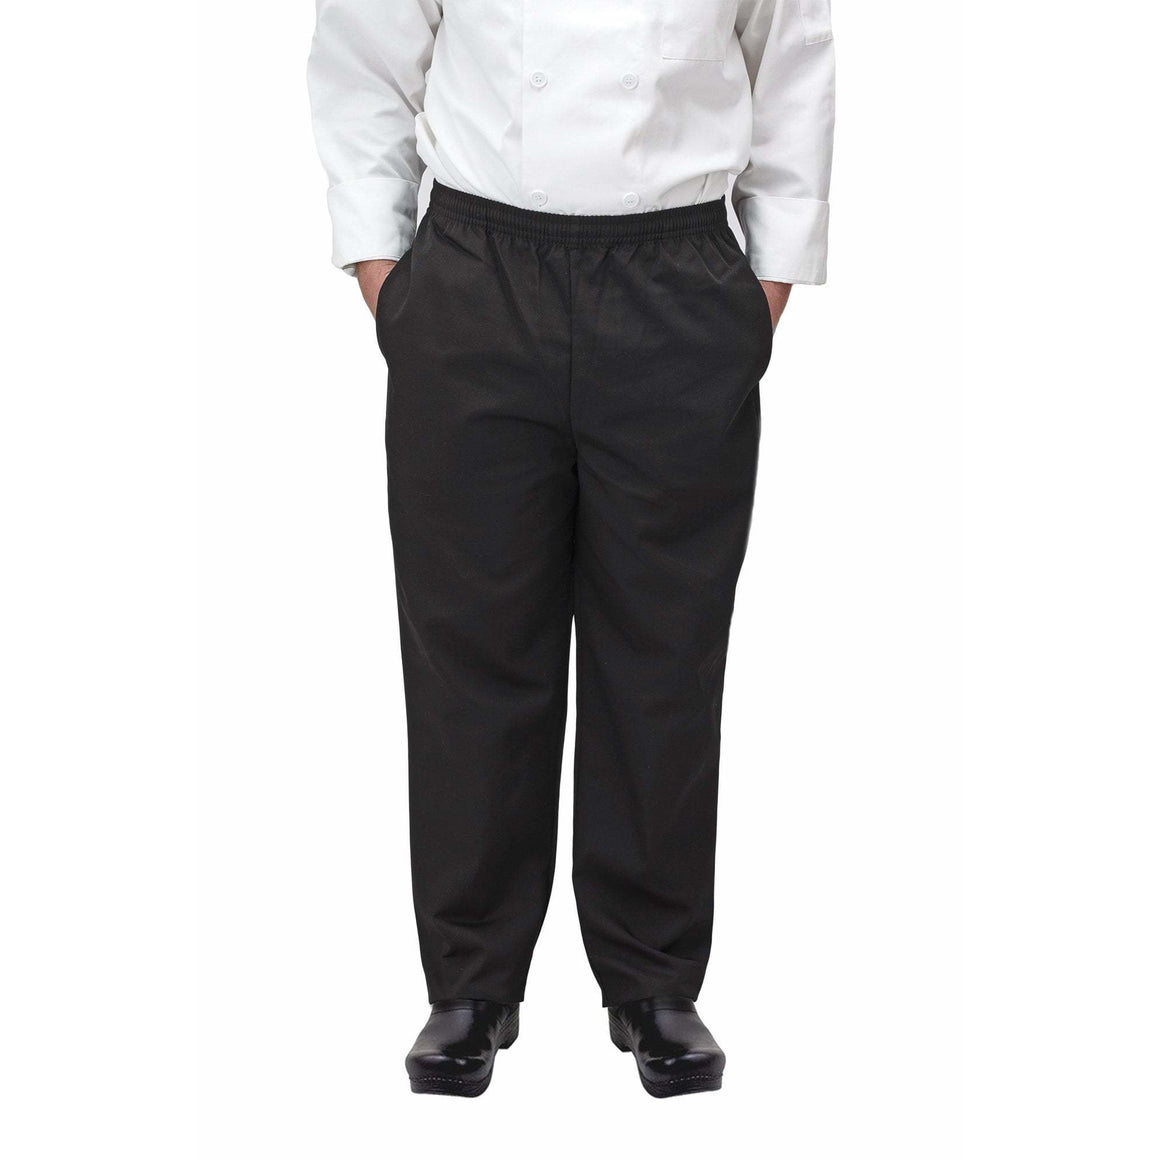 Winco - UNF-2KXL - Chef pants, black, XL - Apparel - Maltese & Co New and Used  restaurant Equipment